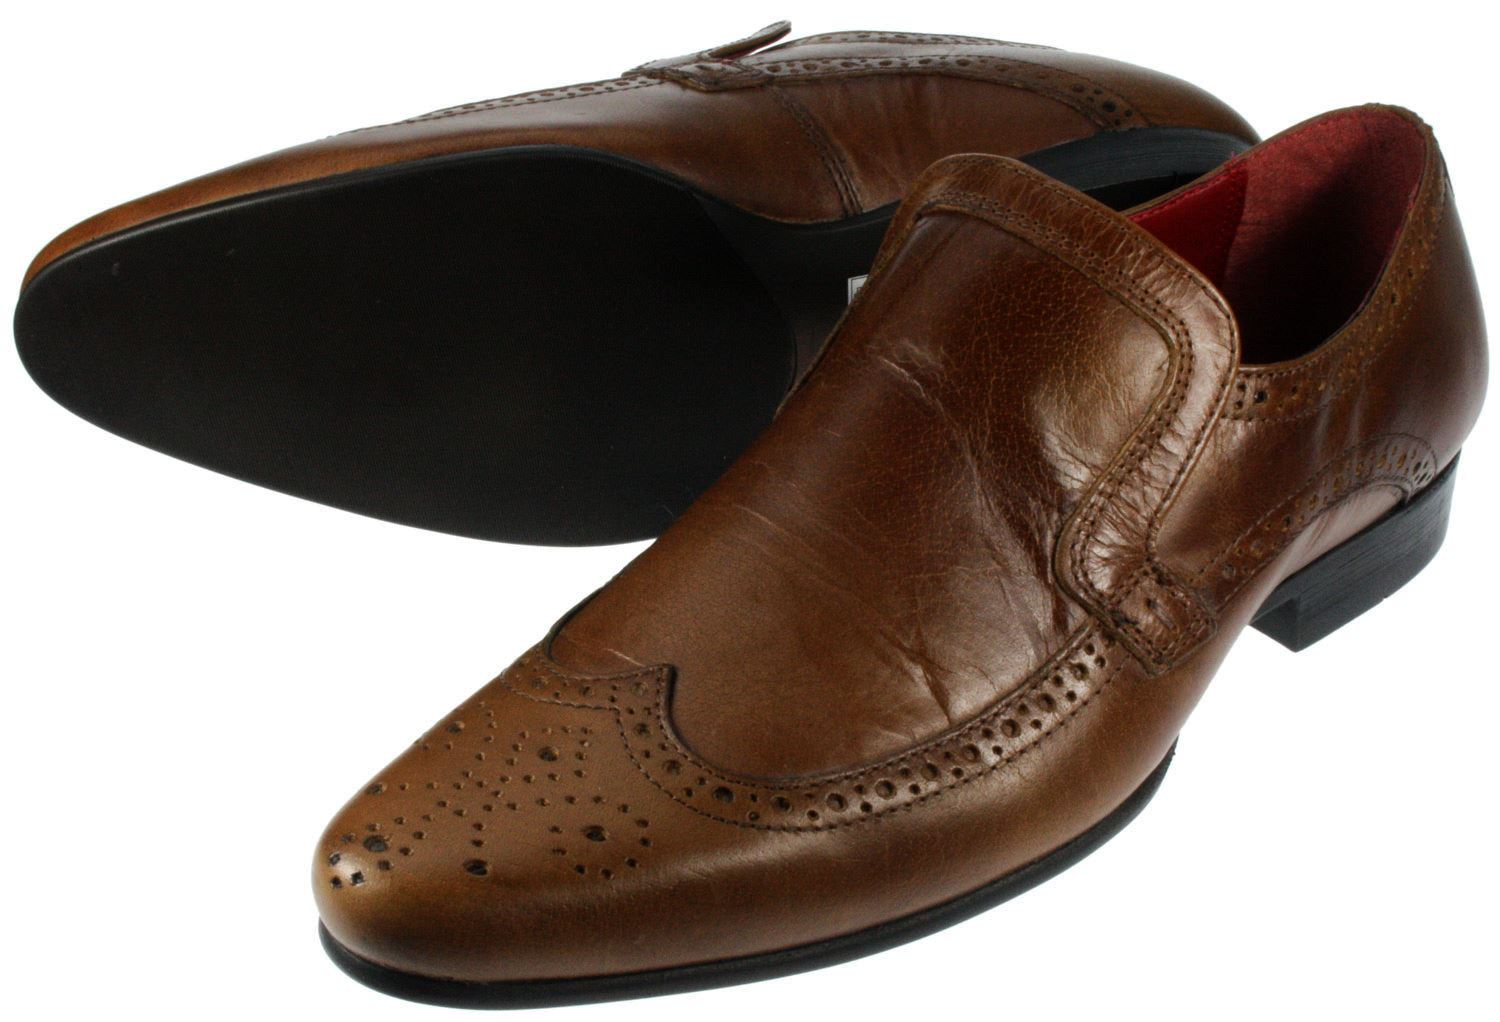 Gents Spats For Shoes On Sale Uk